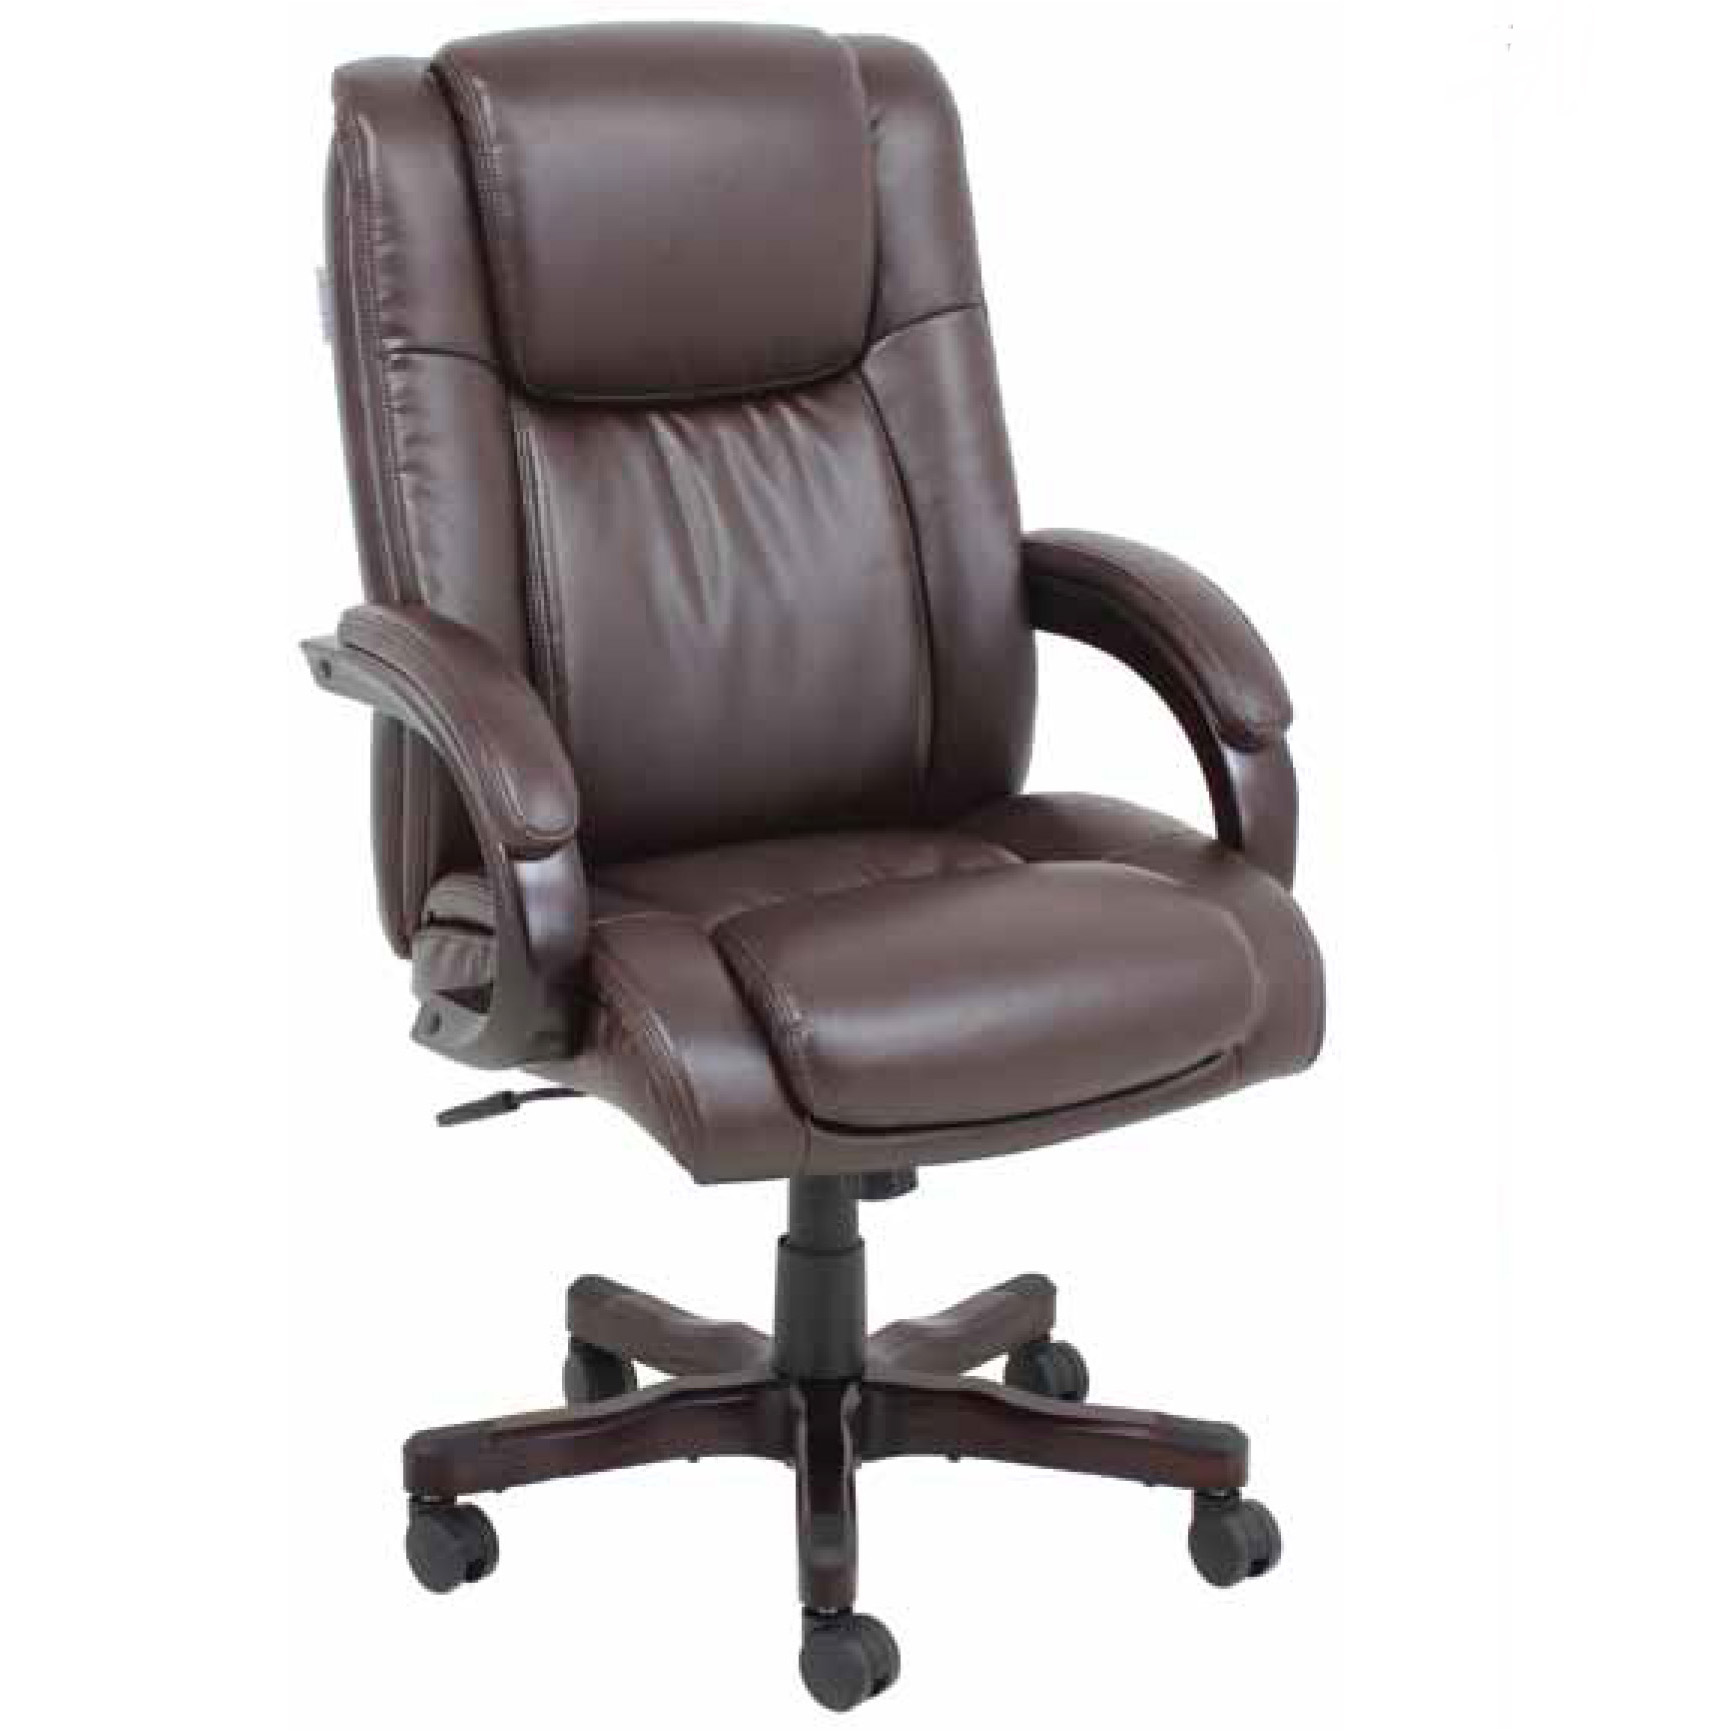 Barcalounger titan ii home office desk chair recliner for Home office chairs leather